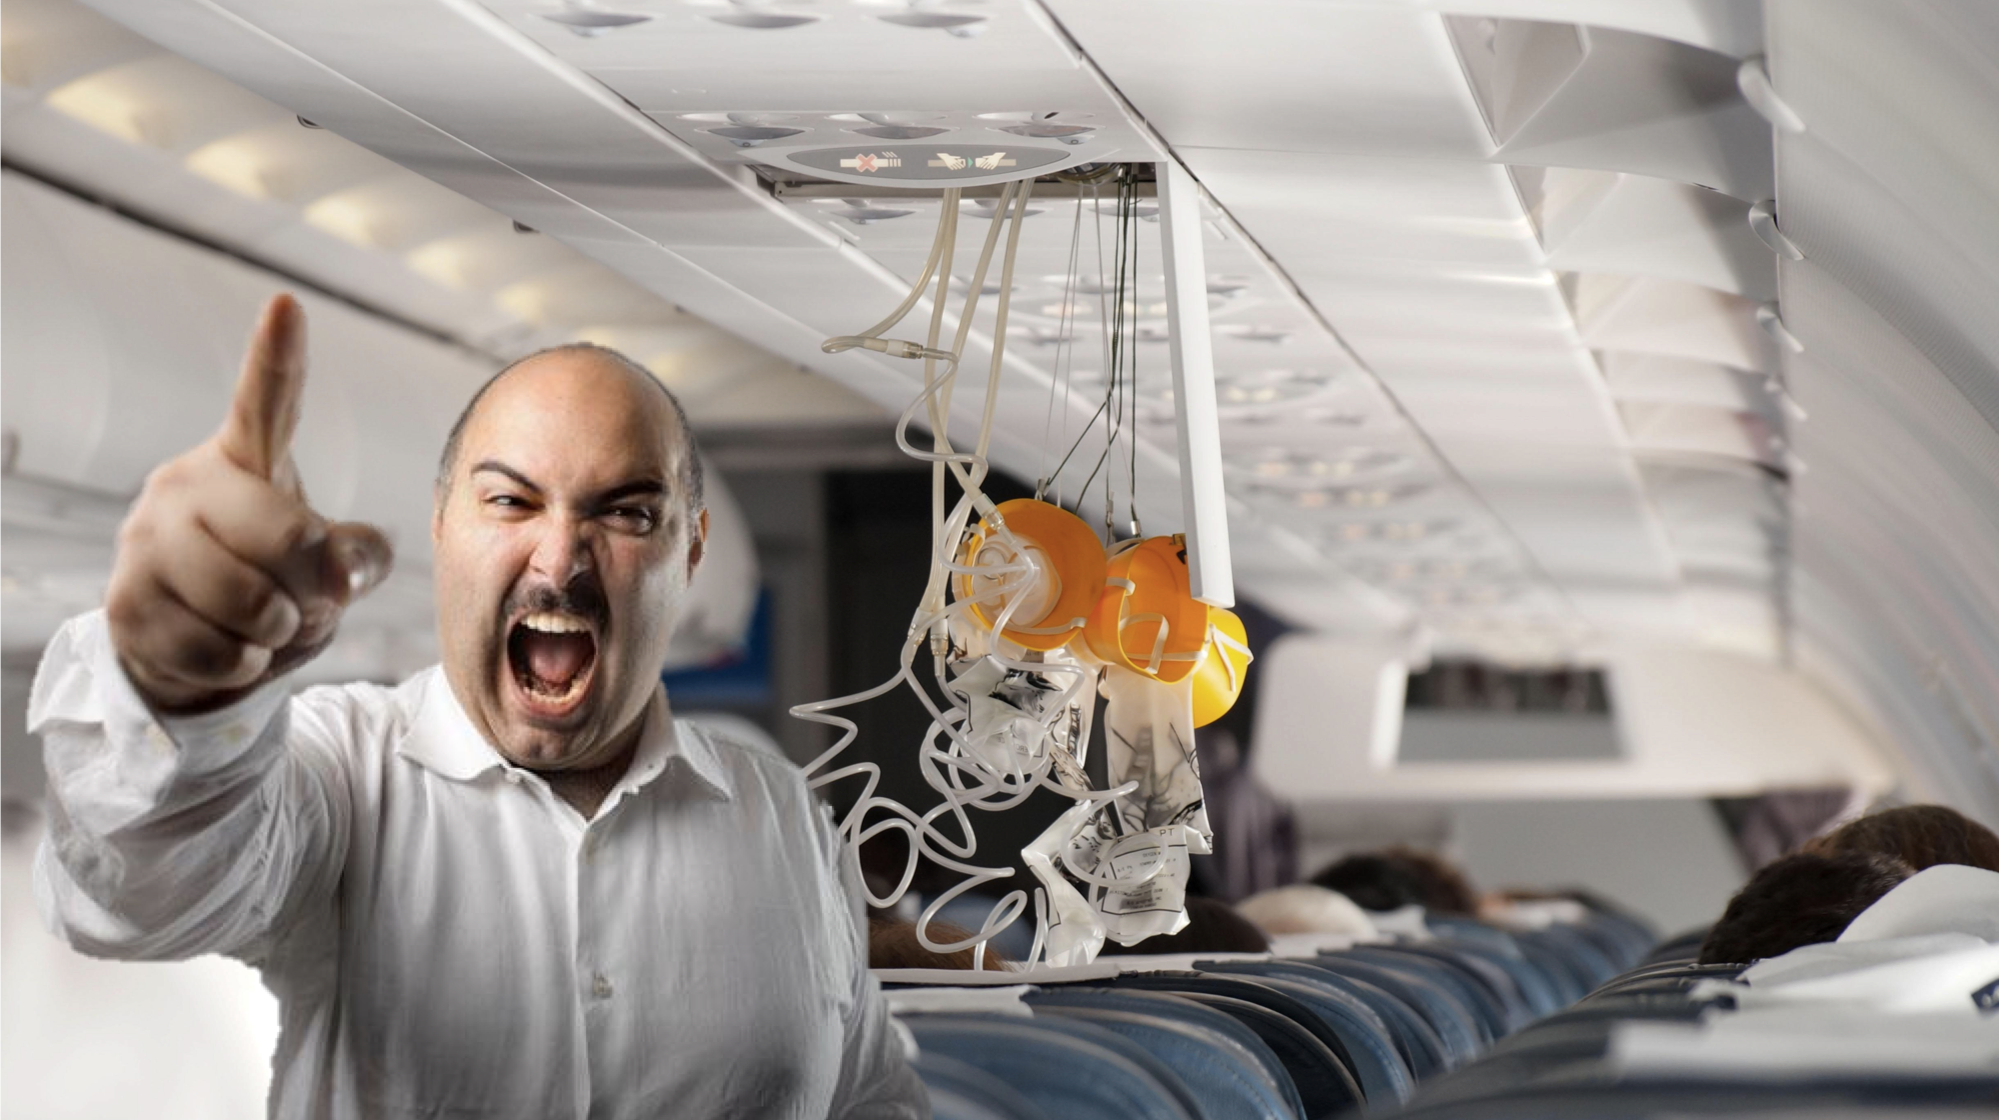 Man On Plane Refuses To Wear Mask Because It Breaches His Human Rights